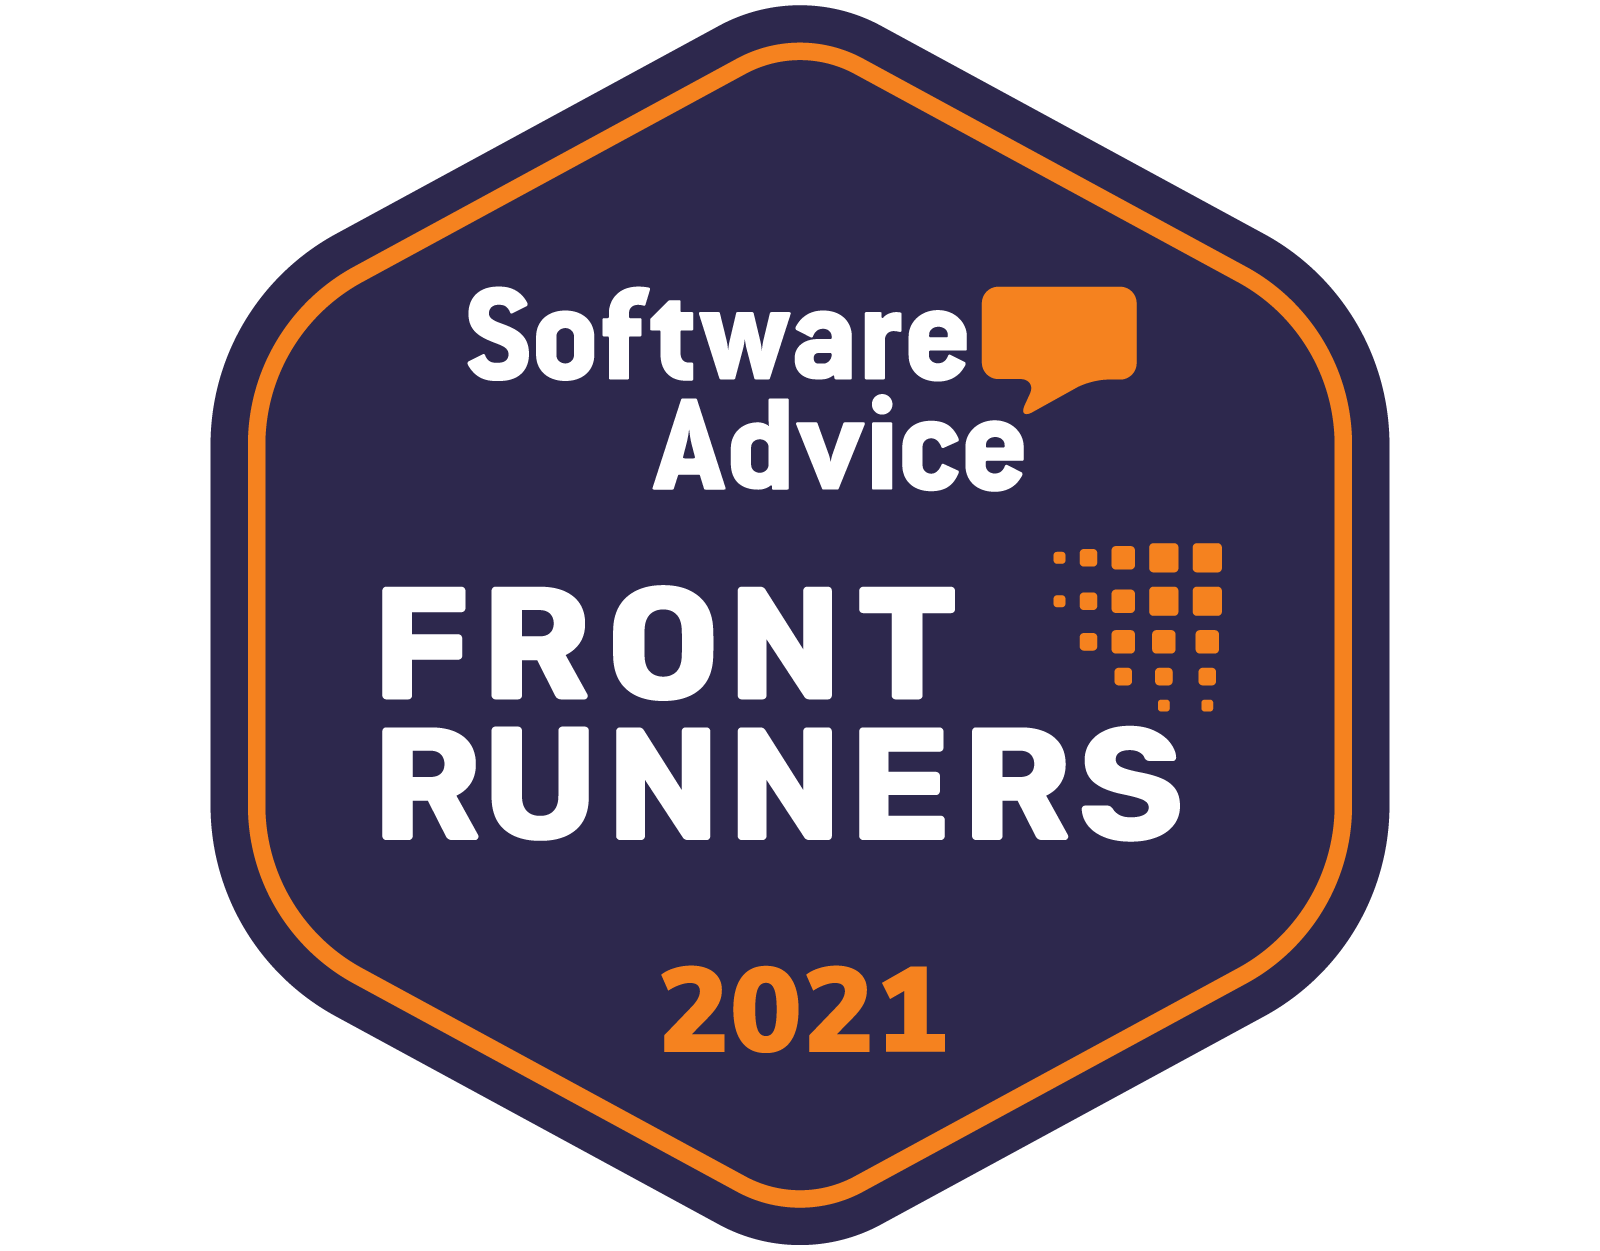 dnsfilter software advice front runner 2021